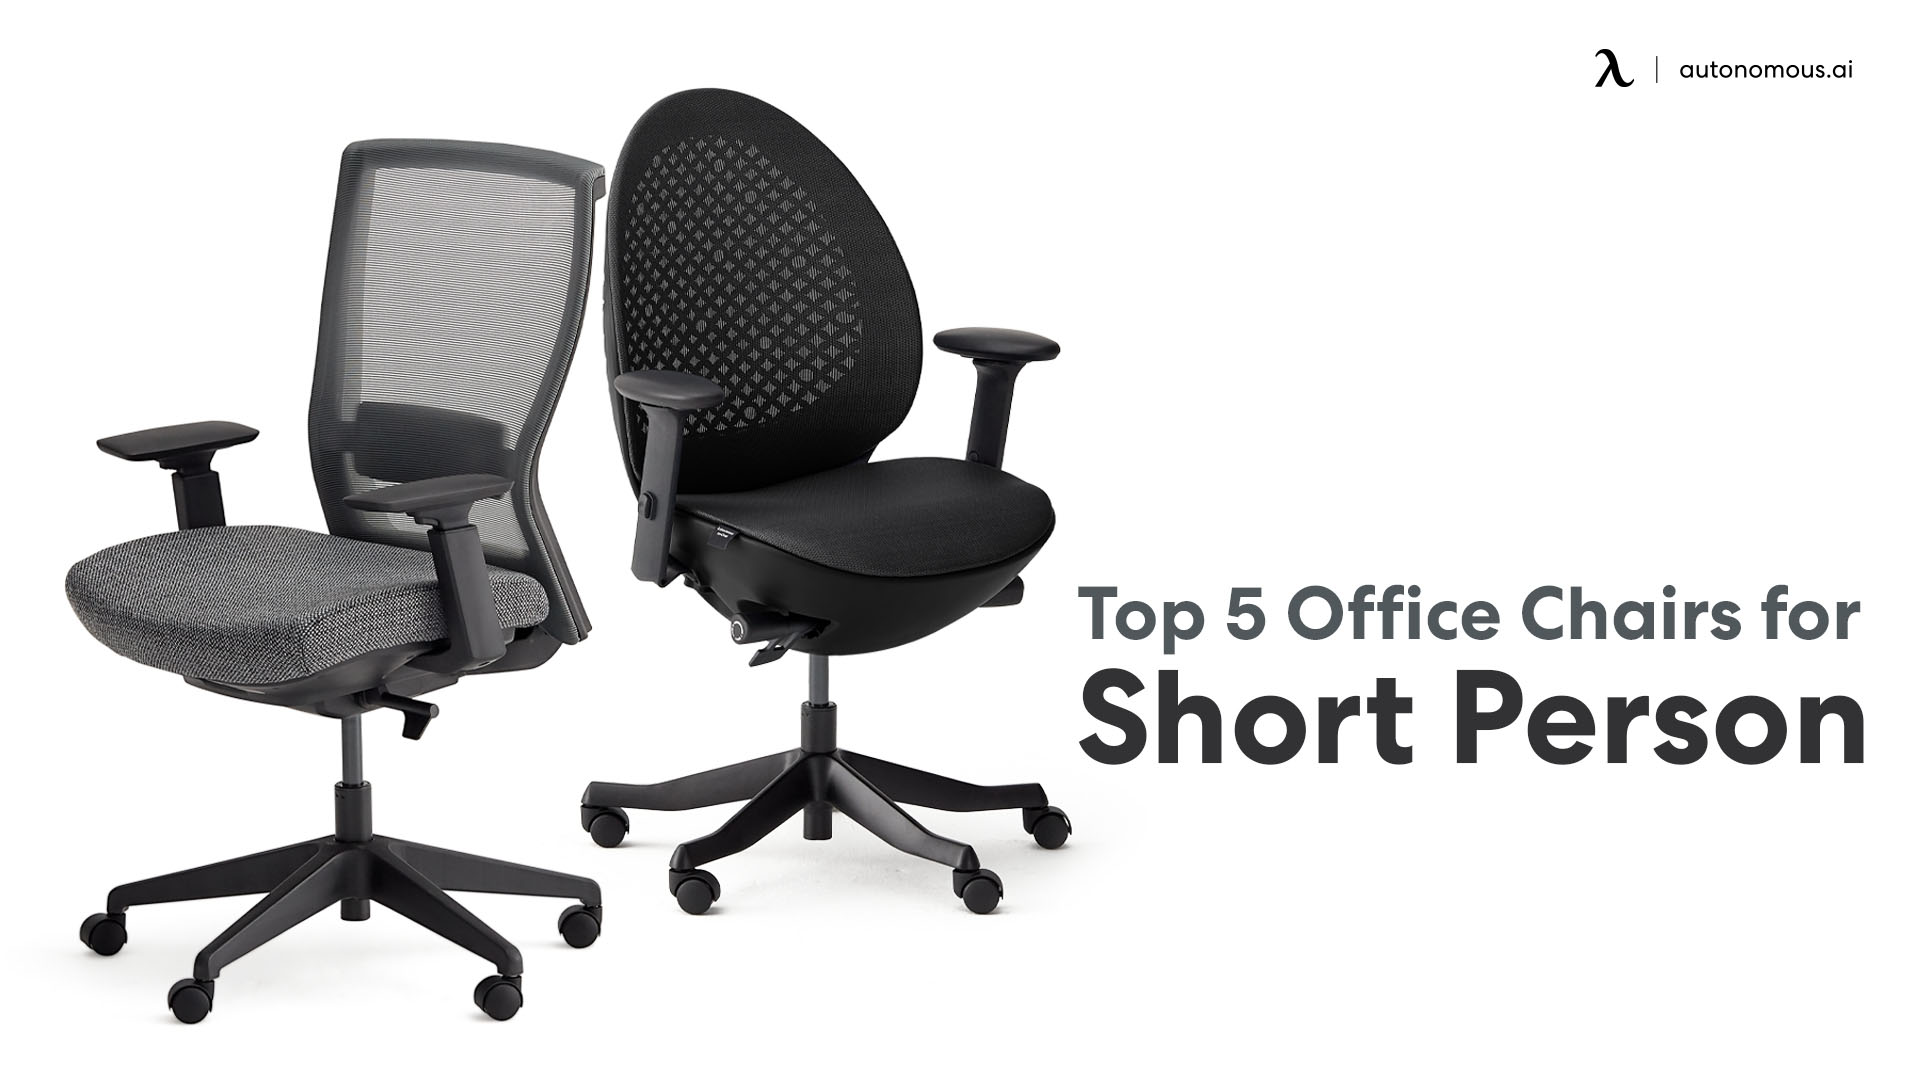 Top 5 Office Chairs for Short Person